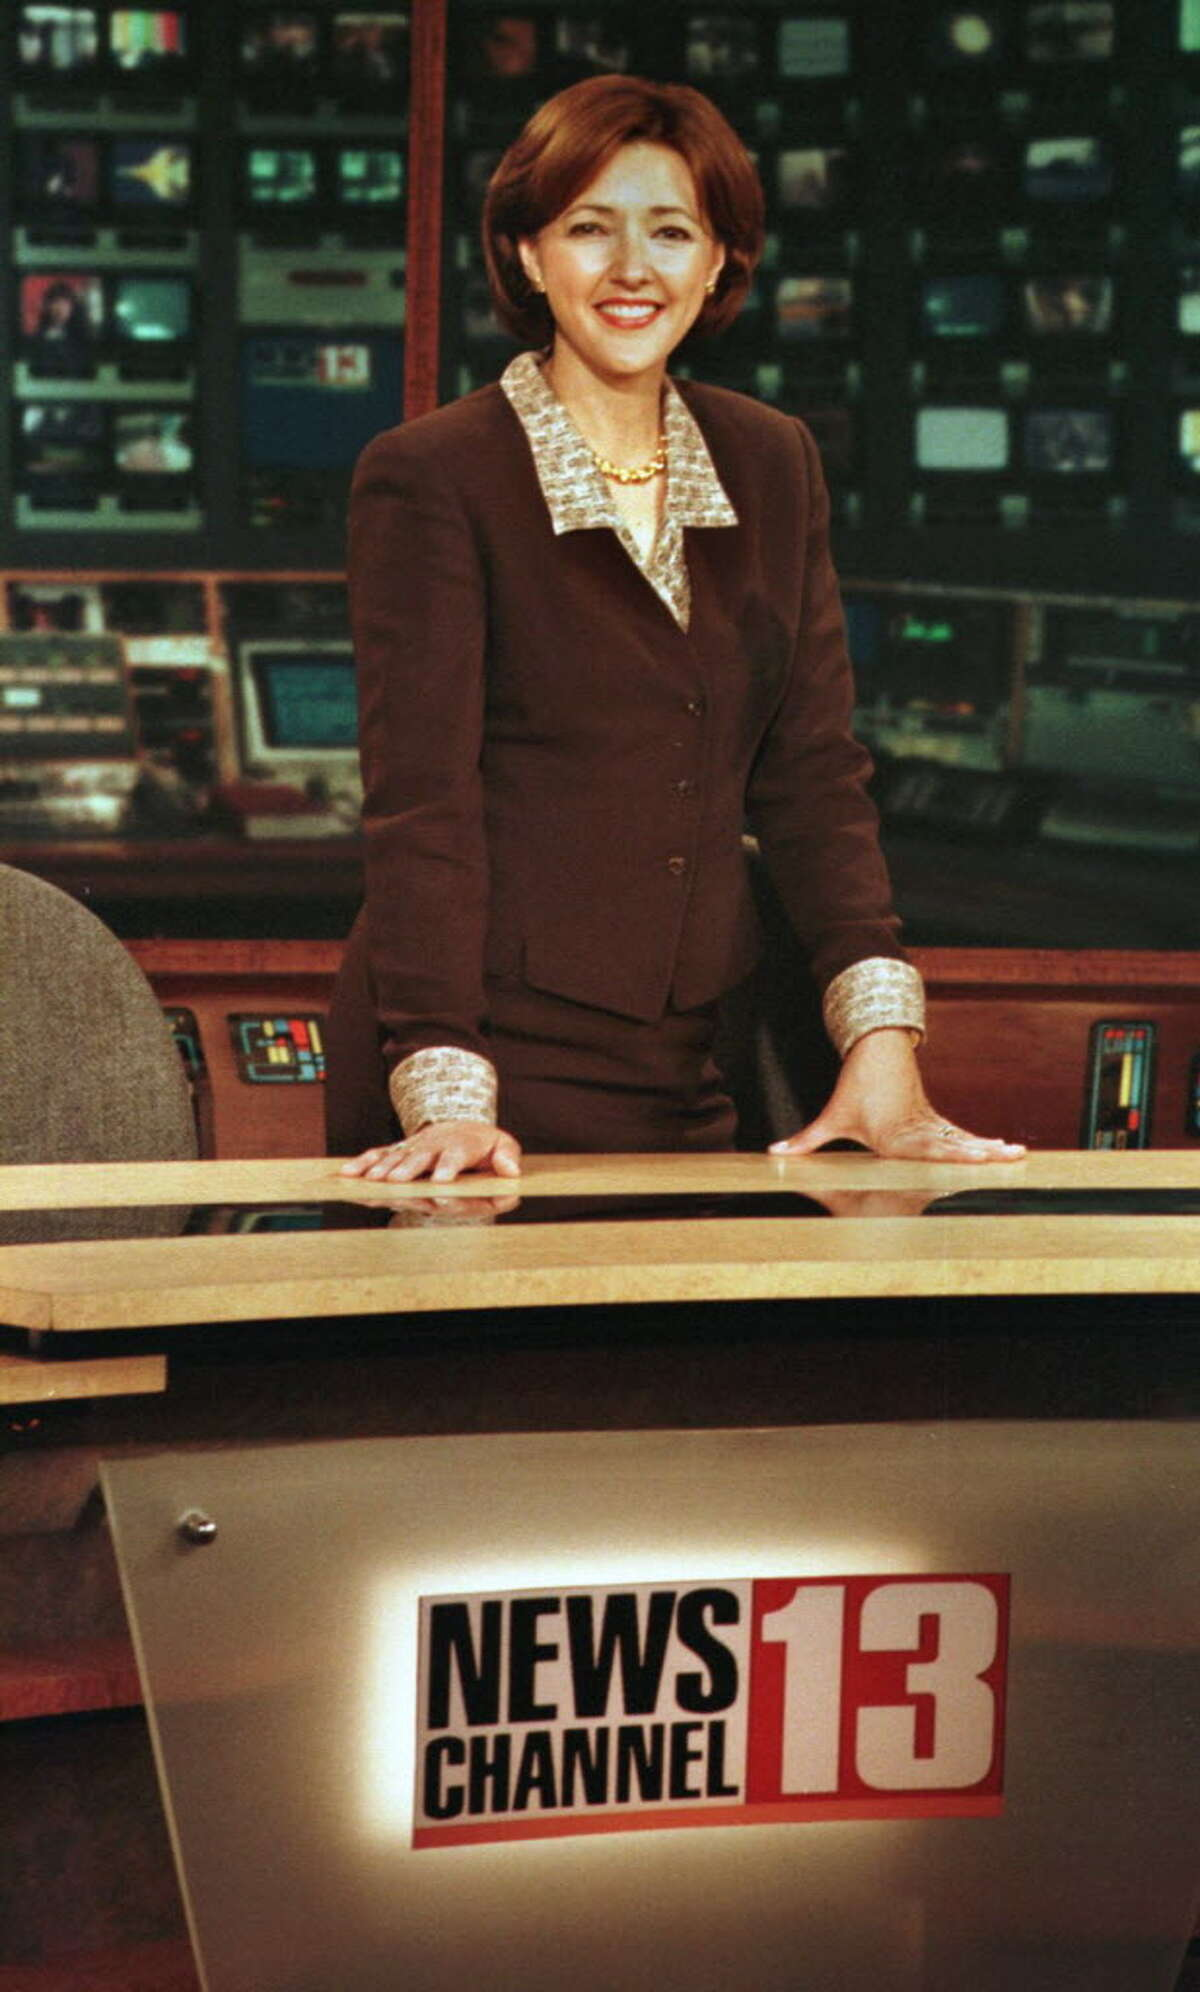 WNYT'sChris Kapostasy is seen in the studio on her last day with the station Friday, June 12, 1998, after 17 years.